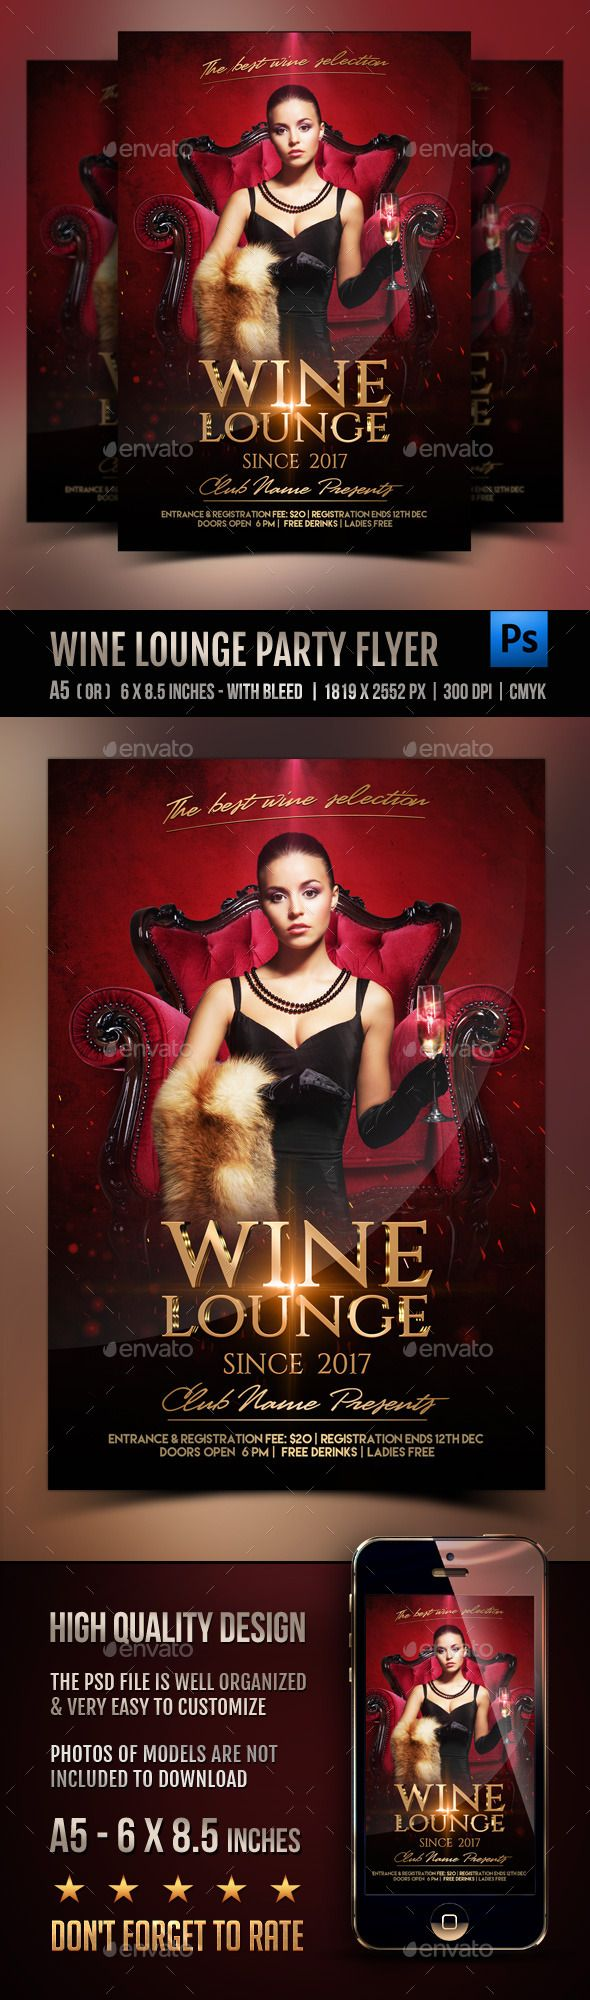 Wine lounge Party Flyer — Photoshop PSD #glamorous #event • Available here → https://graphicriver.net/item/wine-lounge-party-flyer/12121748?ref=pxcr